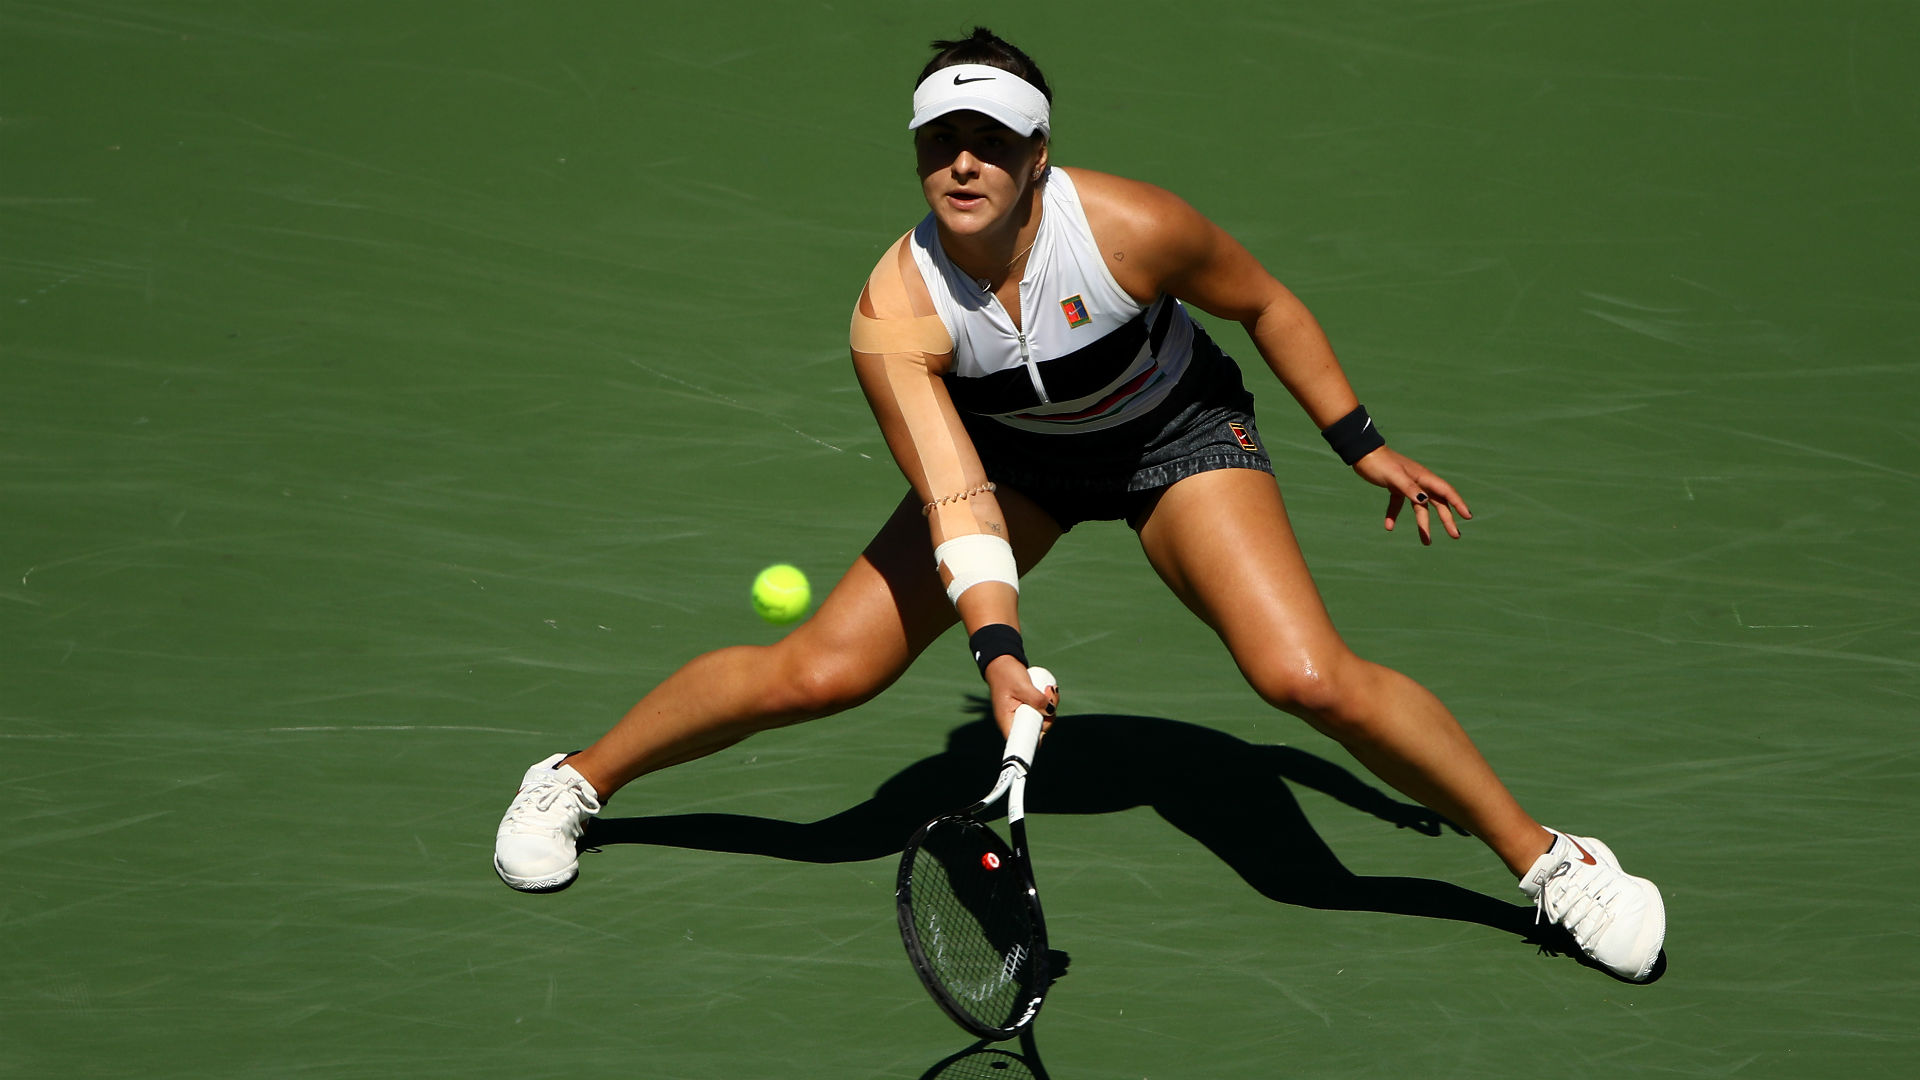 Andreescu claims Indian Wells title